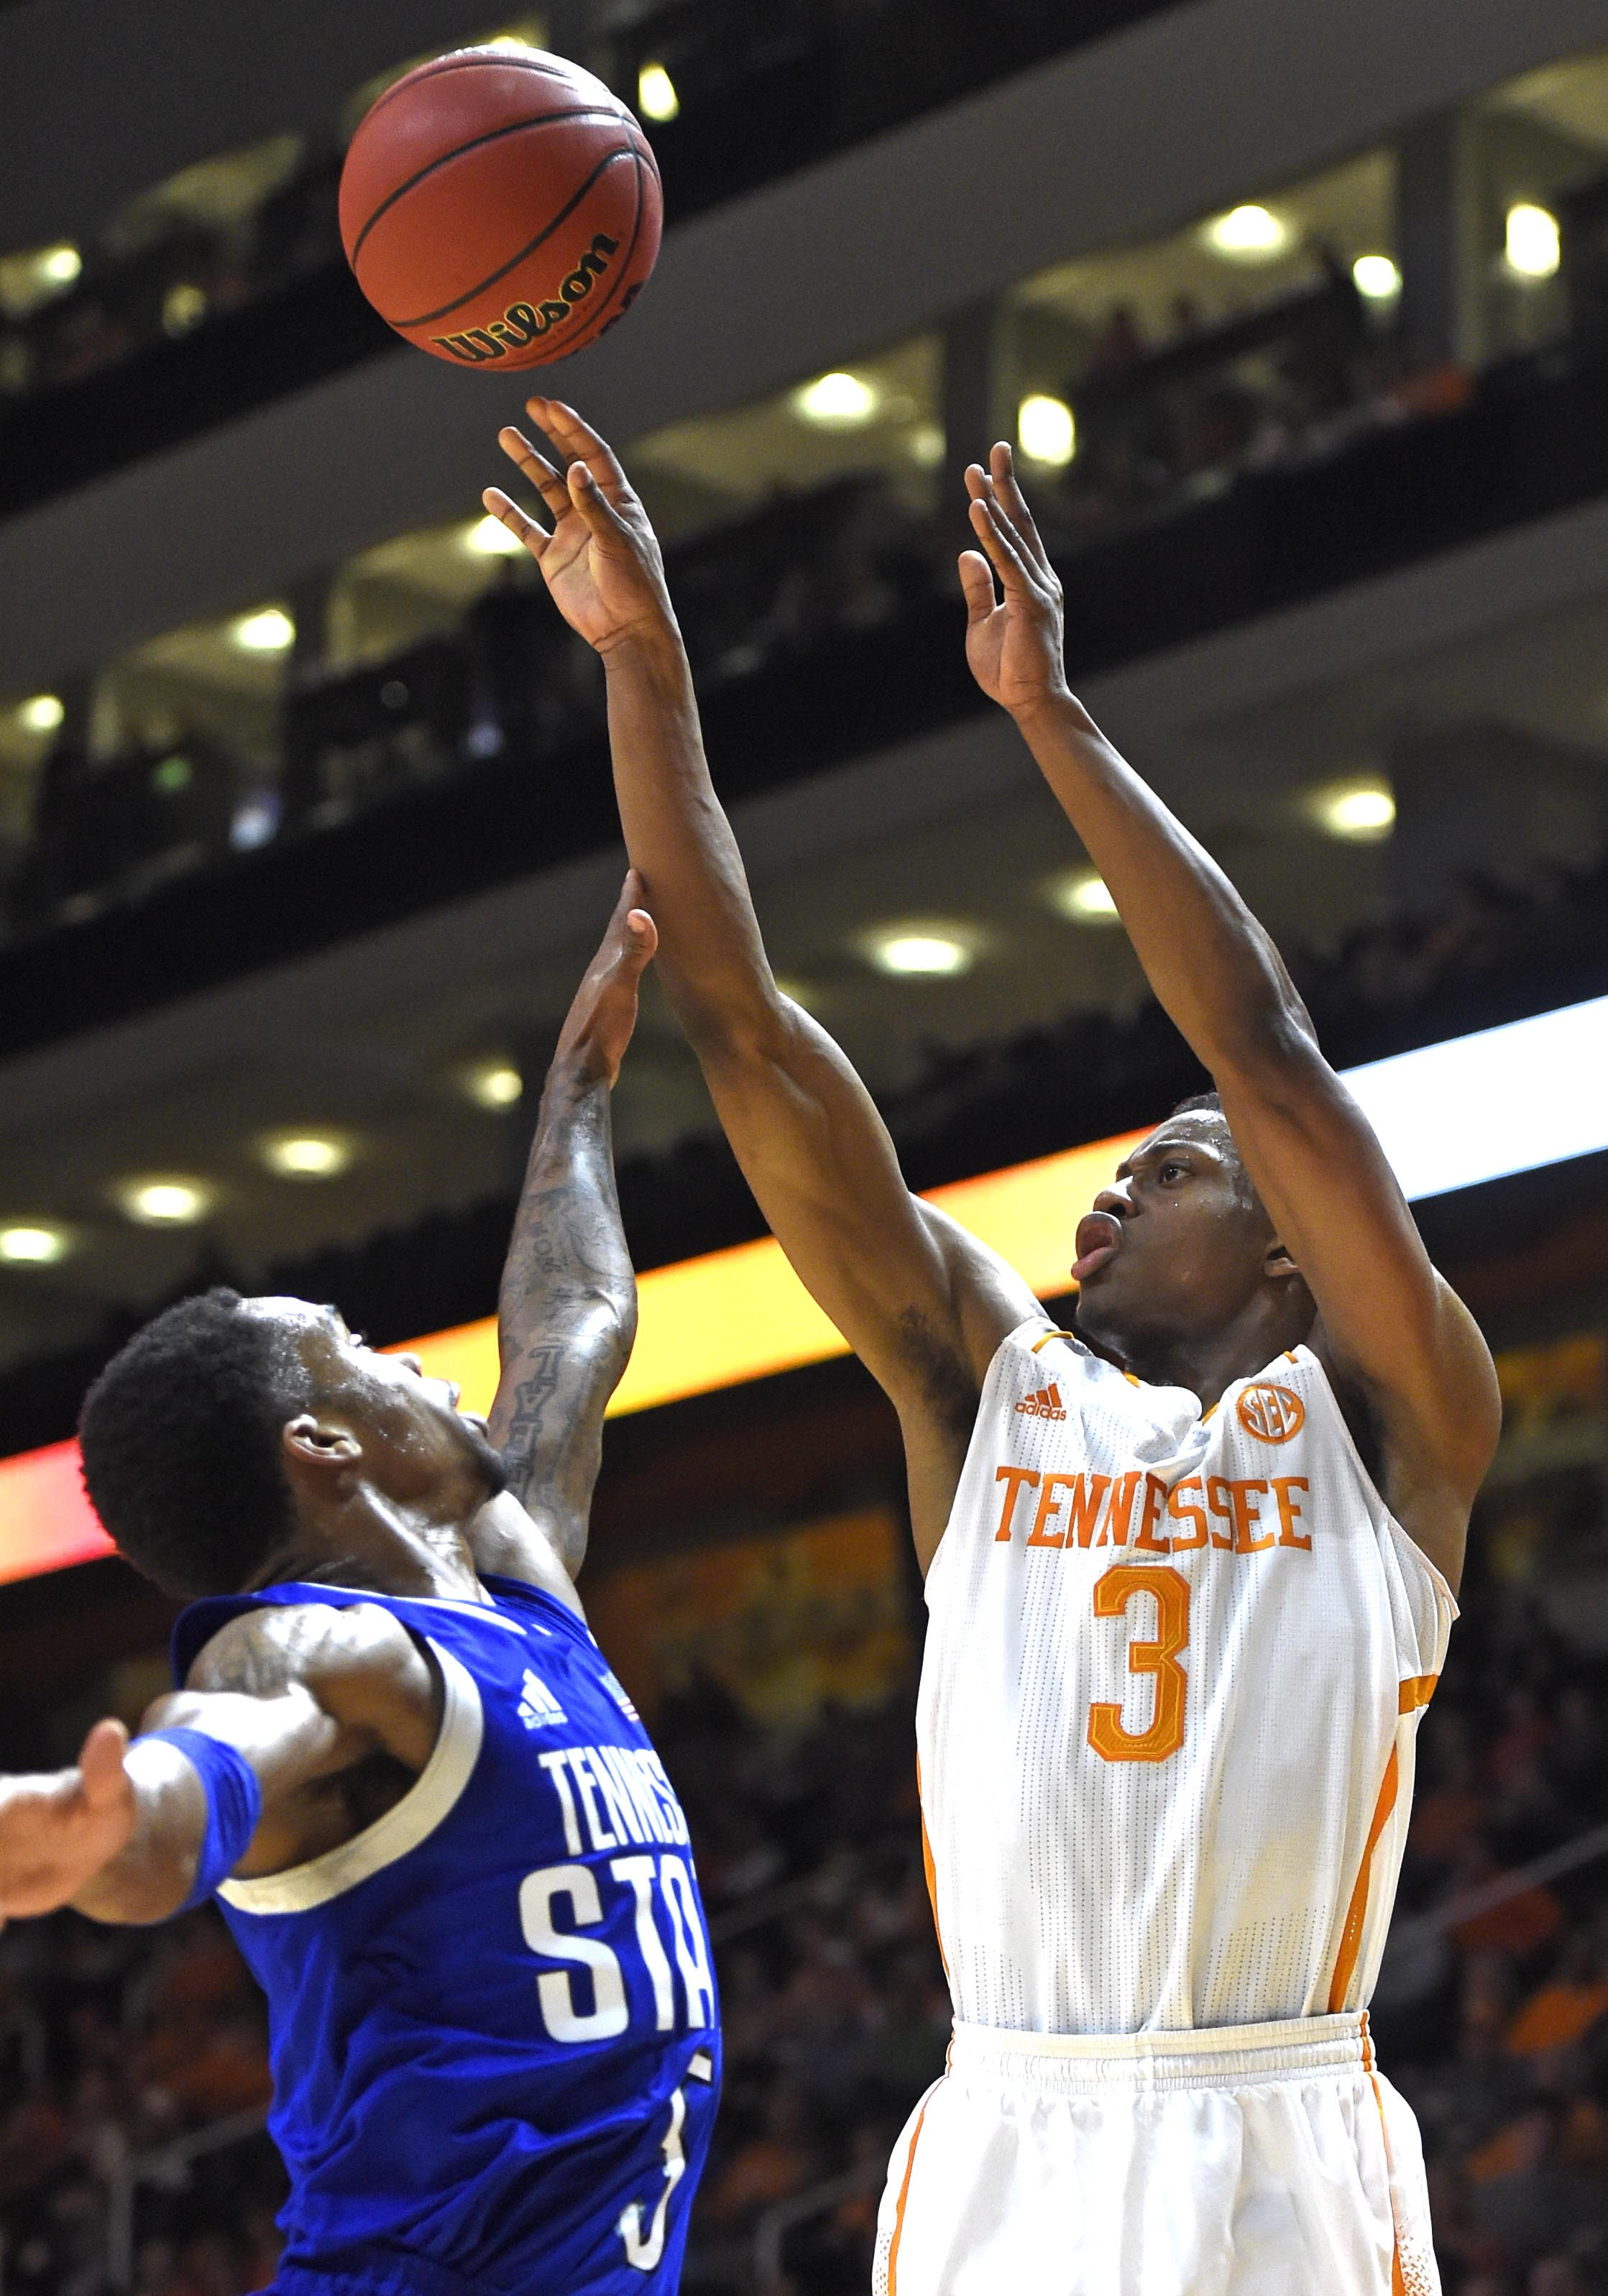 Punter, Tennessee beat Tennessee St, 67-46